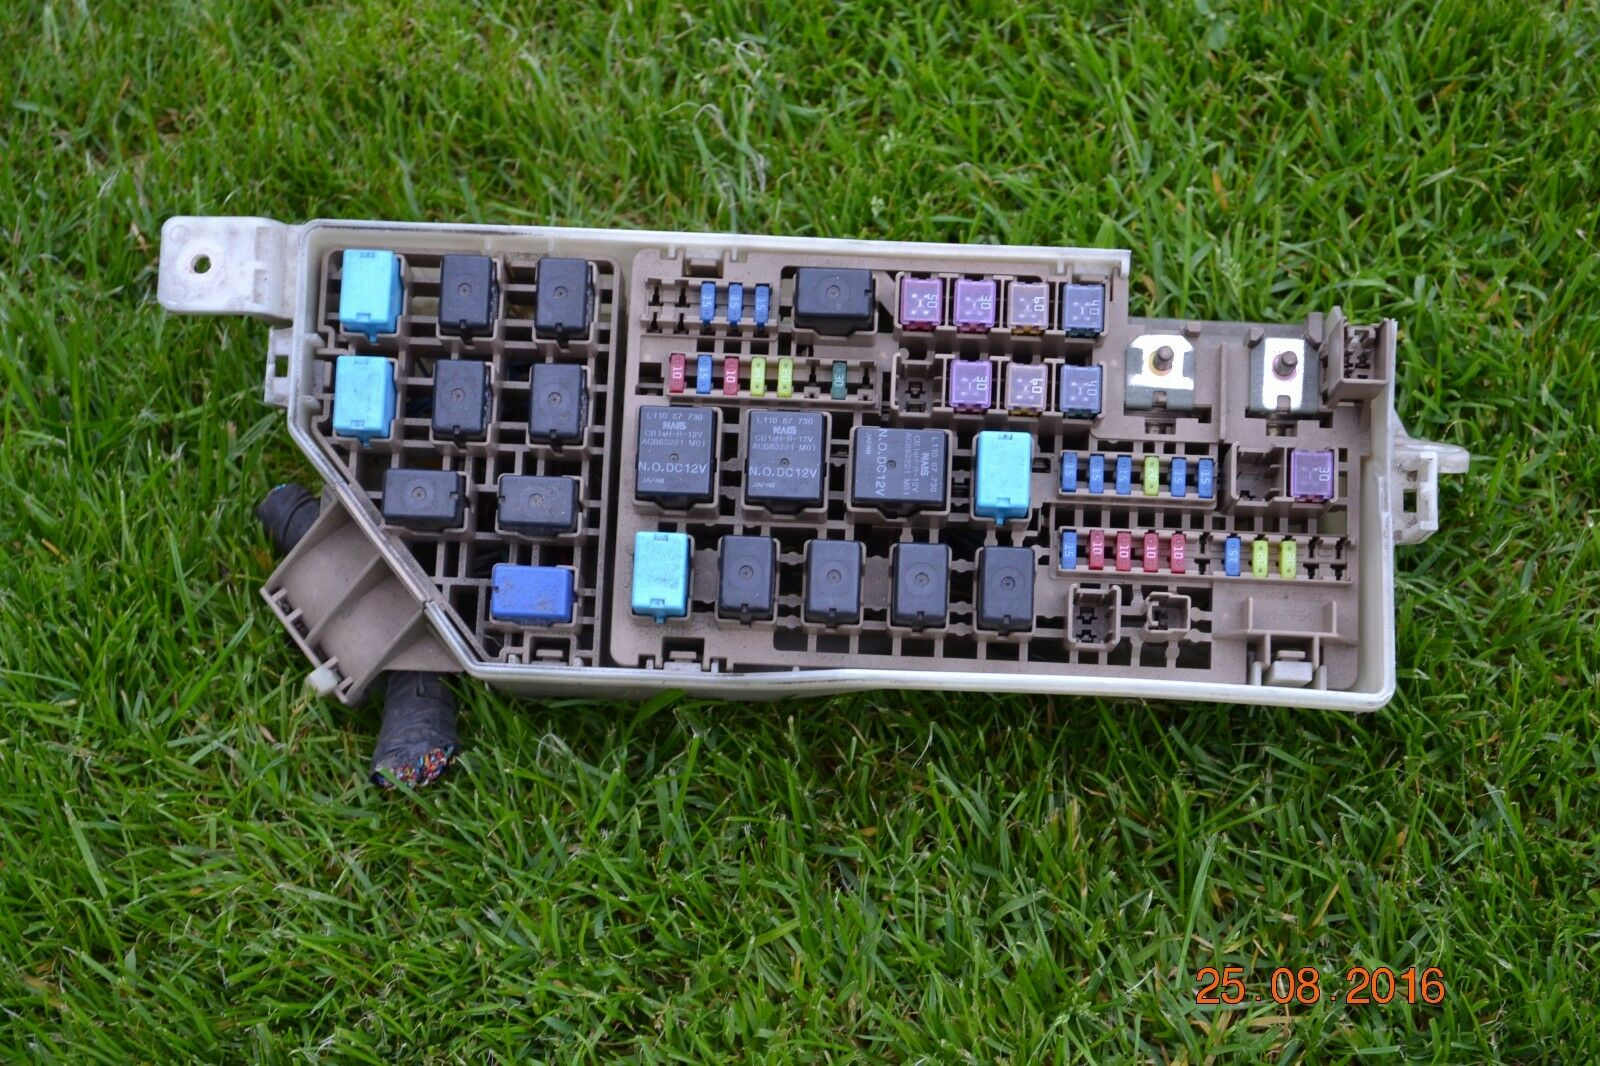 Mazda Rx8 231 Fuse Box 1 of 2 See More